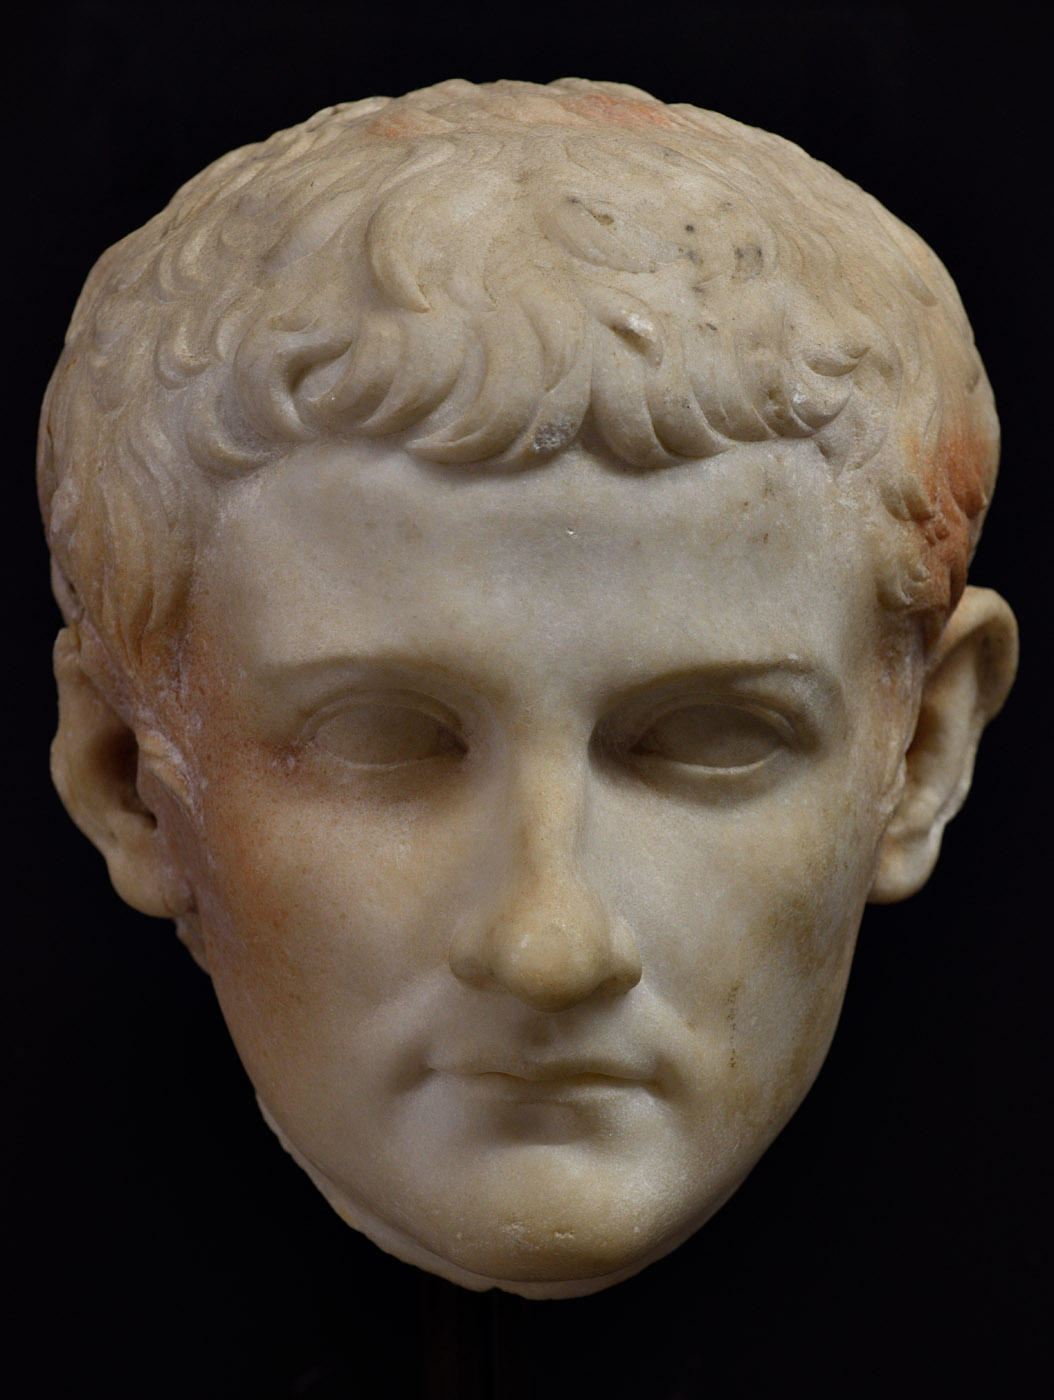 Portrait of a member of a Julio-Claudian dynasty. Medium/fine grain white parian marble. First decades of the 1st cent. CE. Baia, Archaeological Museum of the Phlegraean Fields